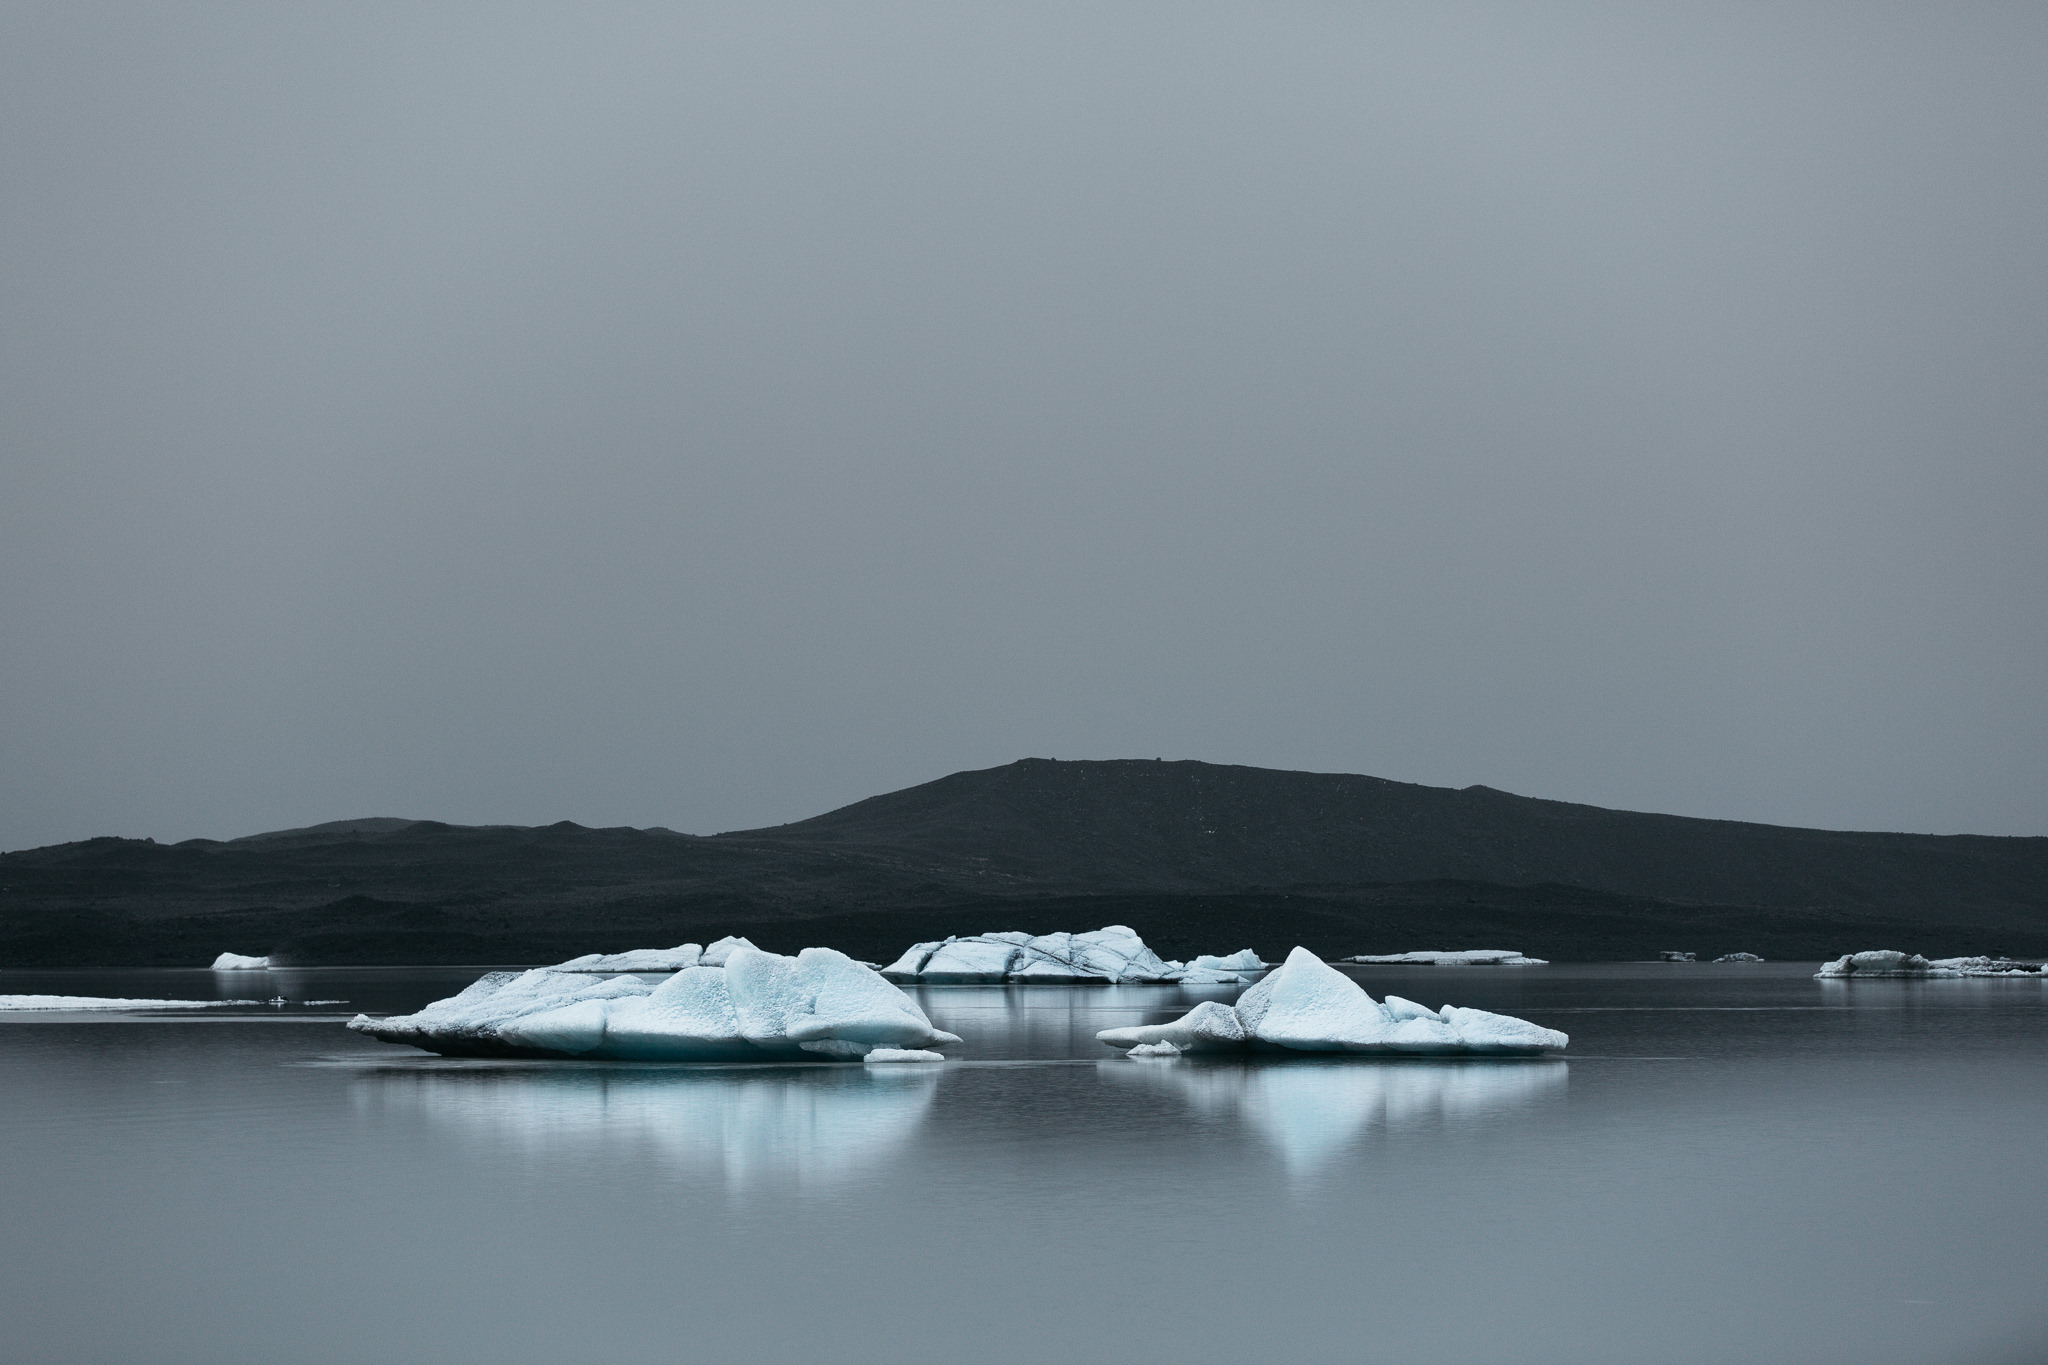 Three large floating icebergs at Skaftafellsjökull lagoon during winter